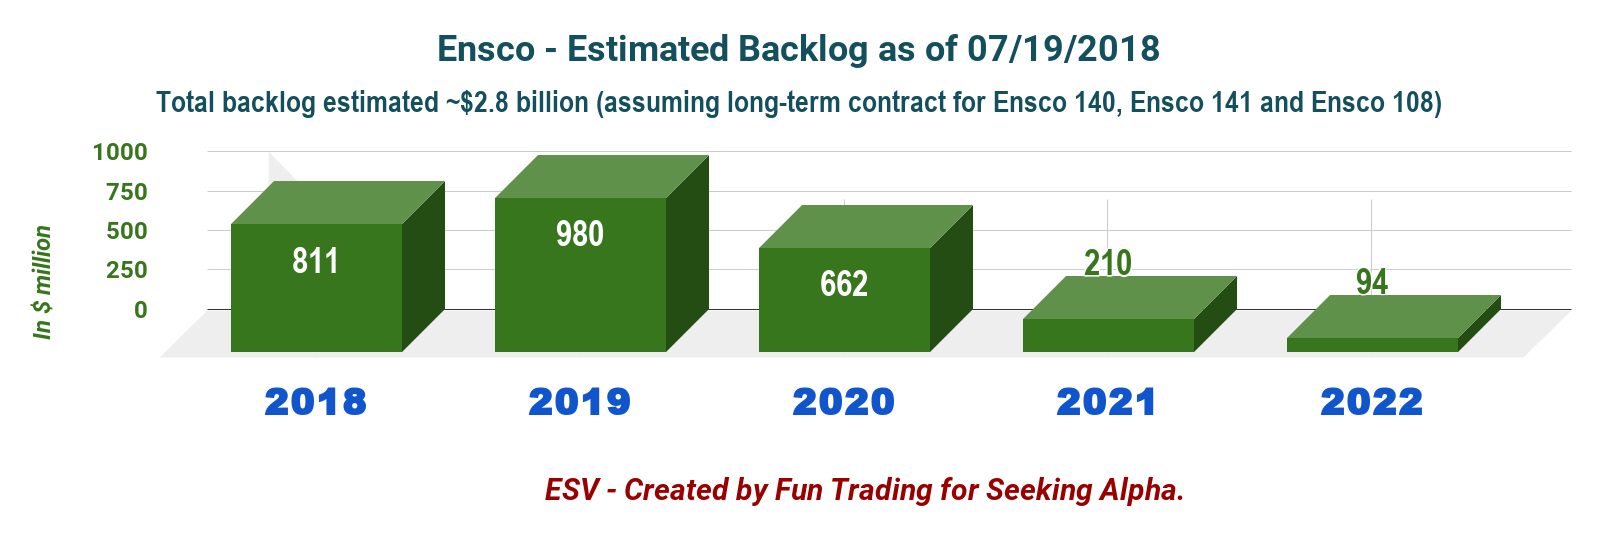 Ensco Fleet Status And Backlog Analysis Plc Nyseesv Description Standby Ups Diagrampng Remaining For 2018 Is About 811 Million The Most Important Segment Still Jack With 143 Billion In Contract